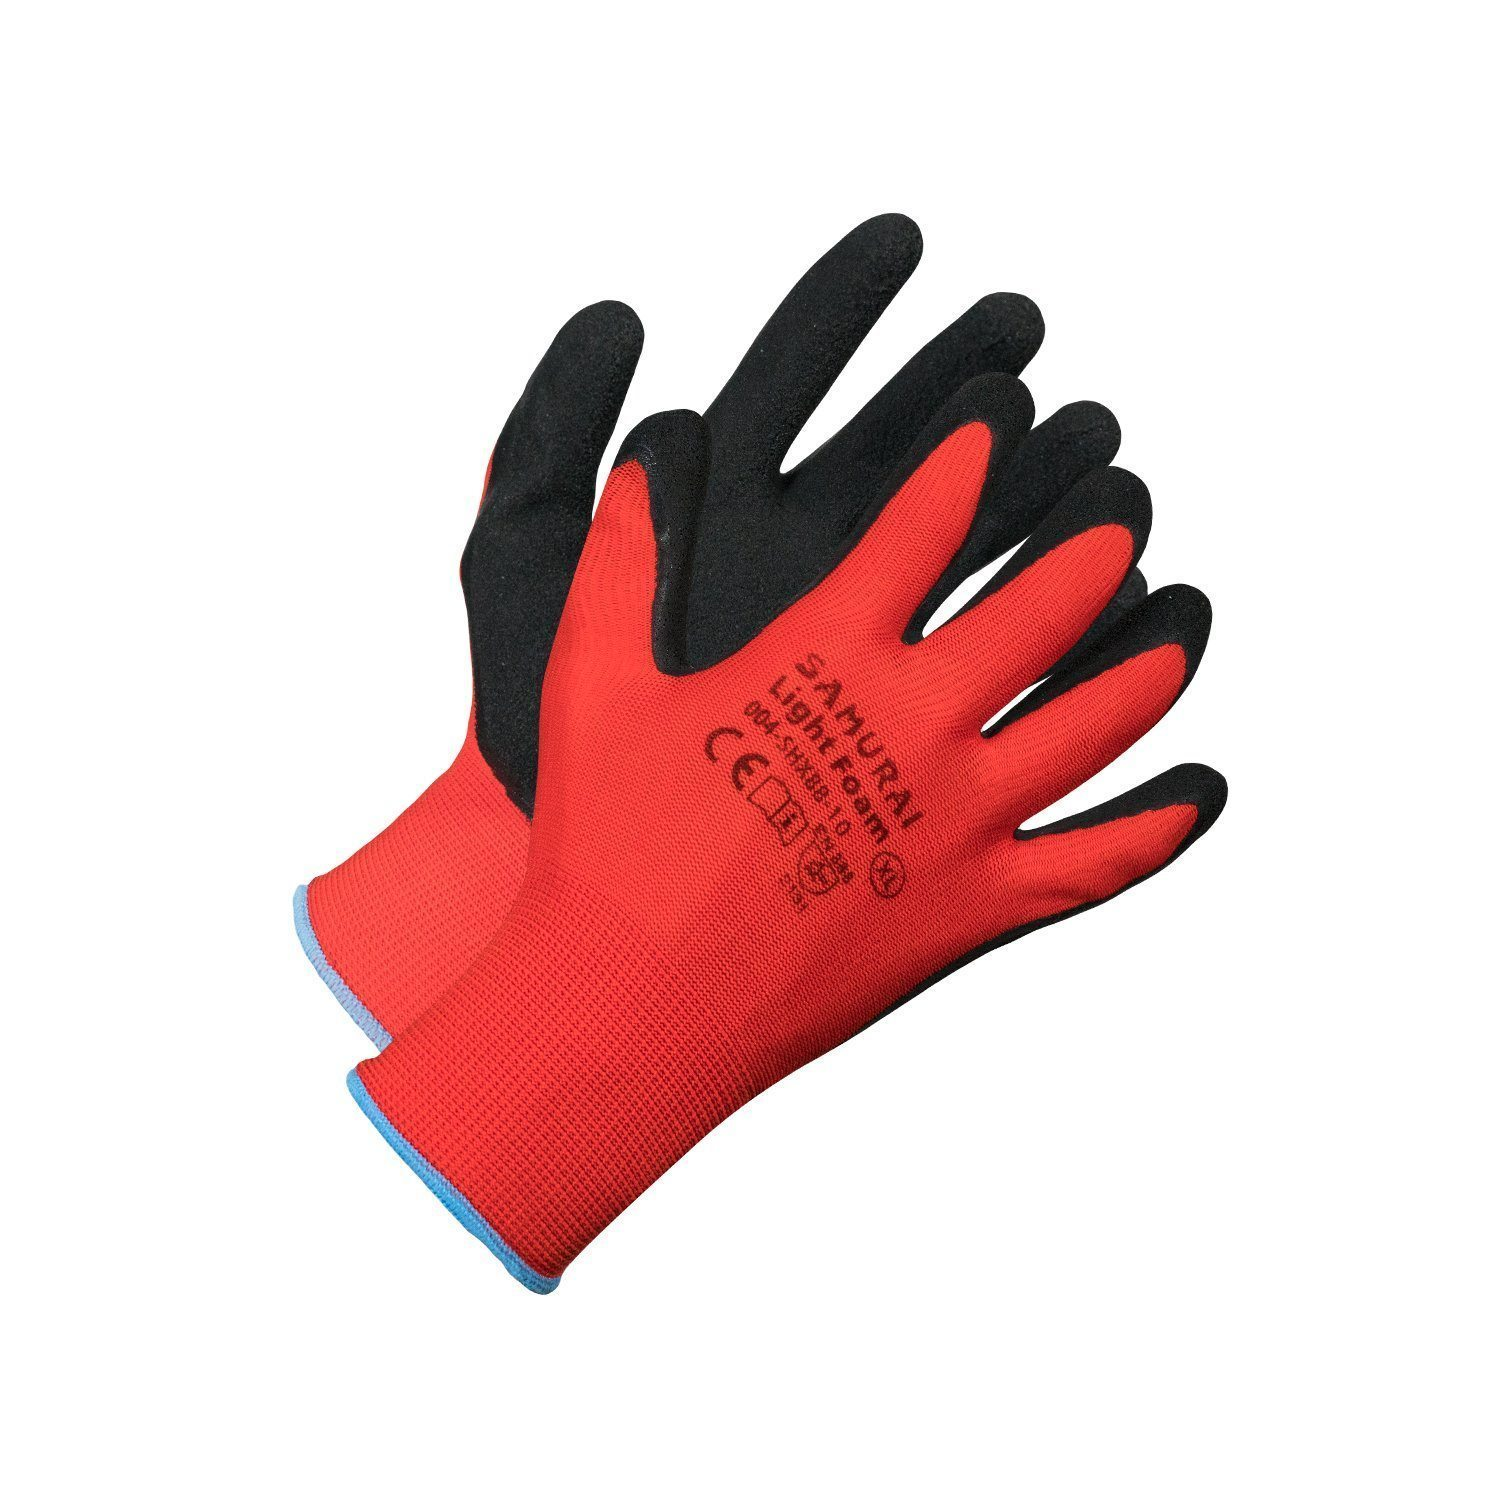 Gloves - Samurai Light Foam -RED (Med Size 8) 004-SHX88-08